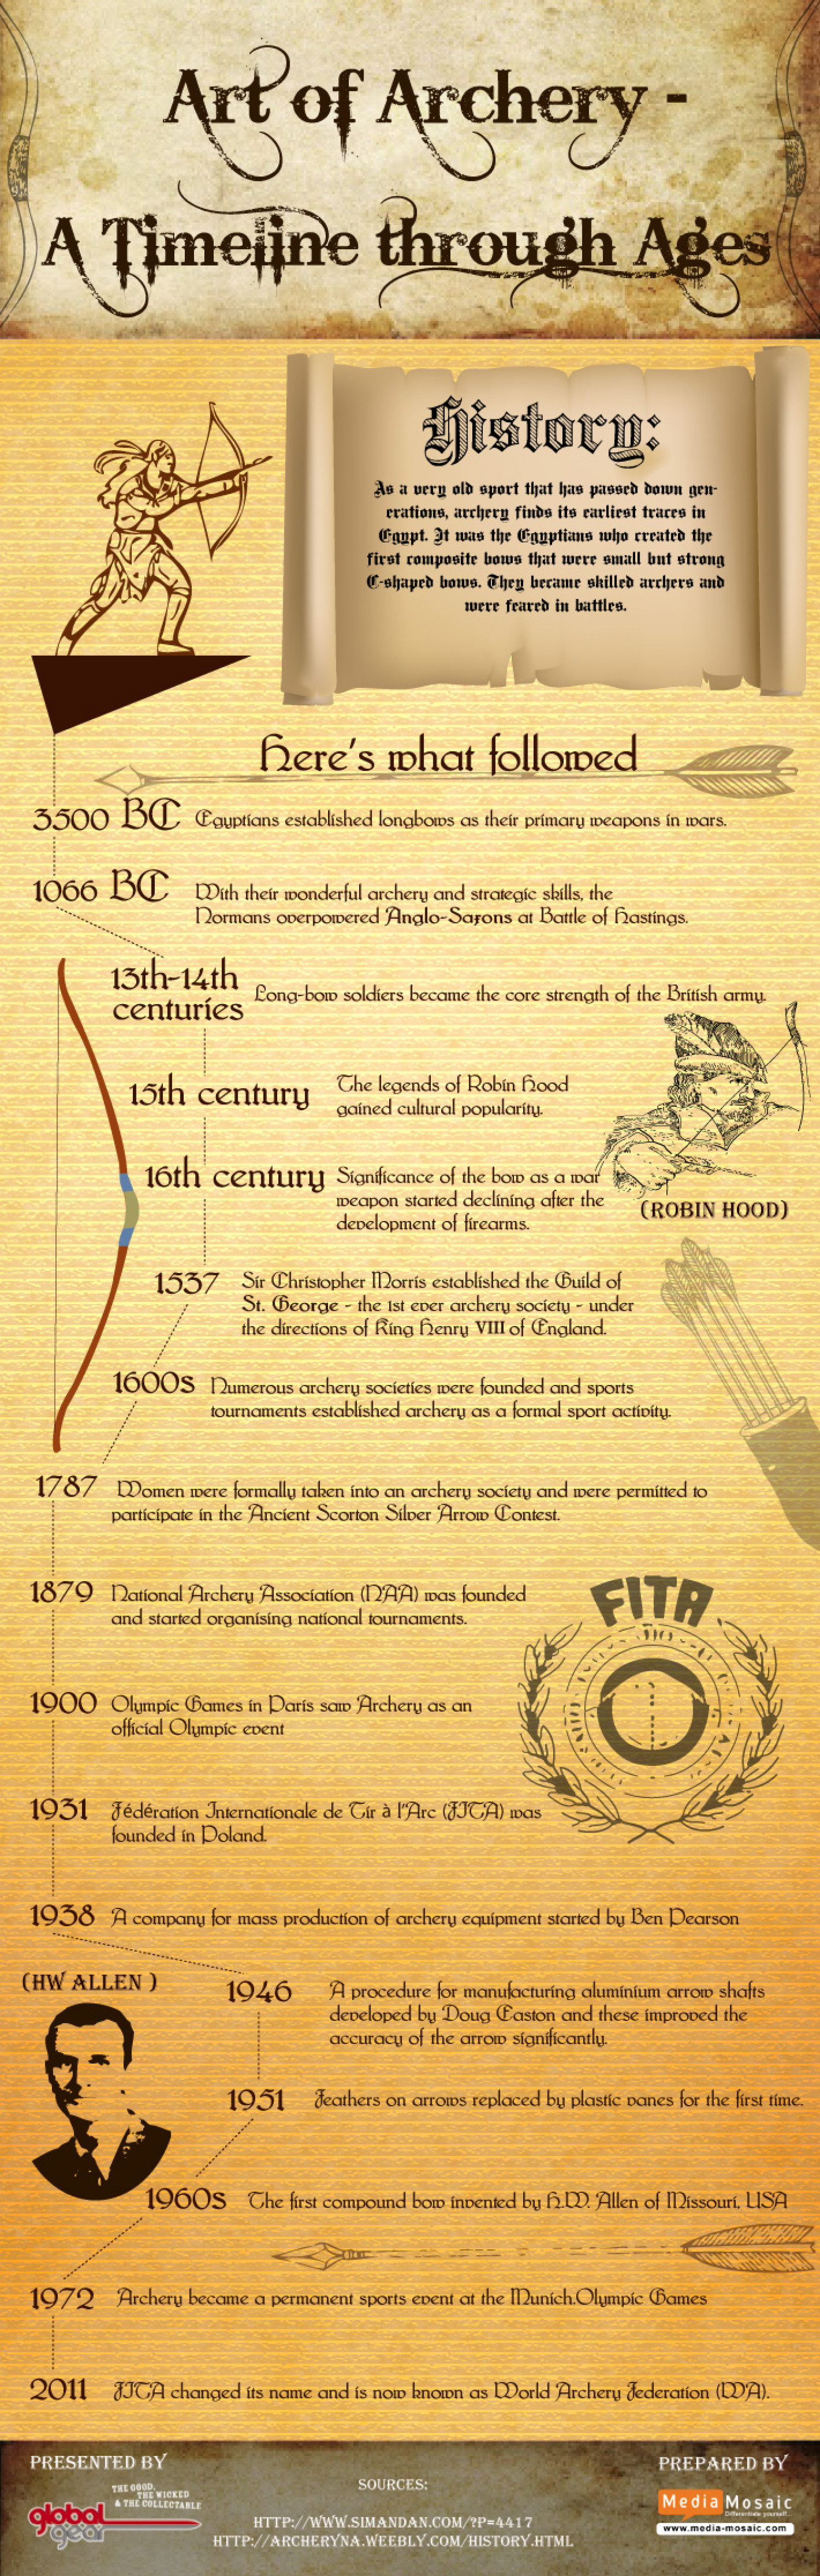 Art of Archery: A Timeline through Ages Infographic